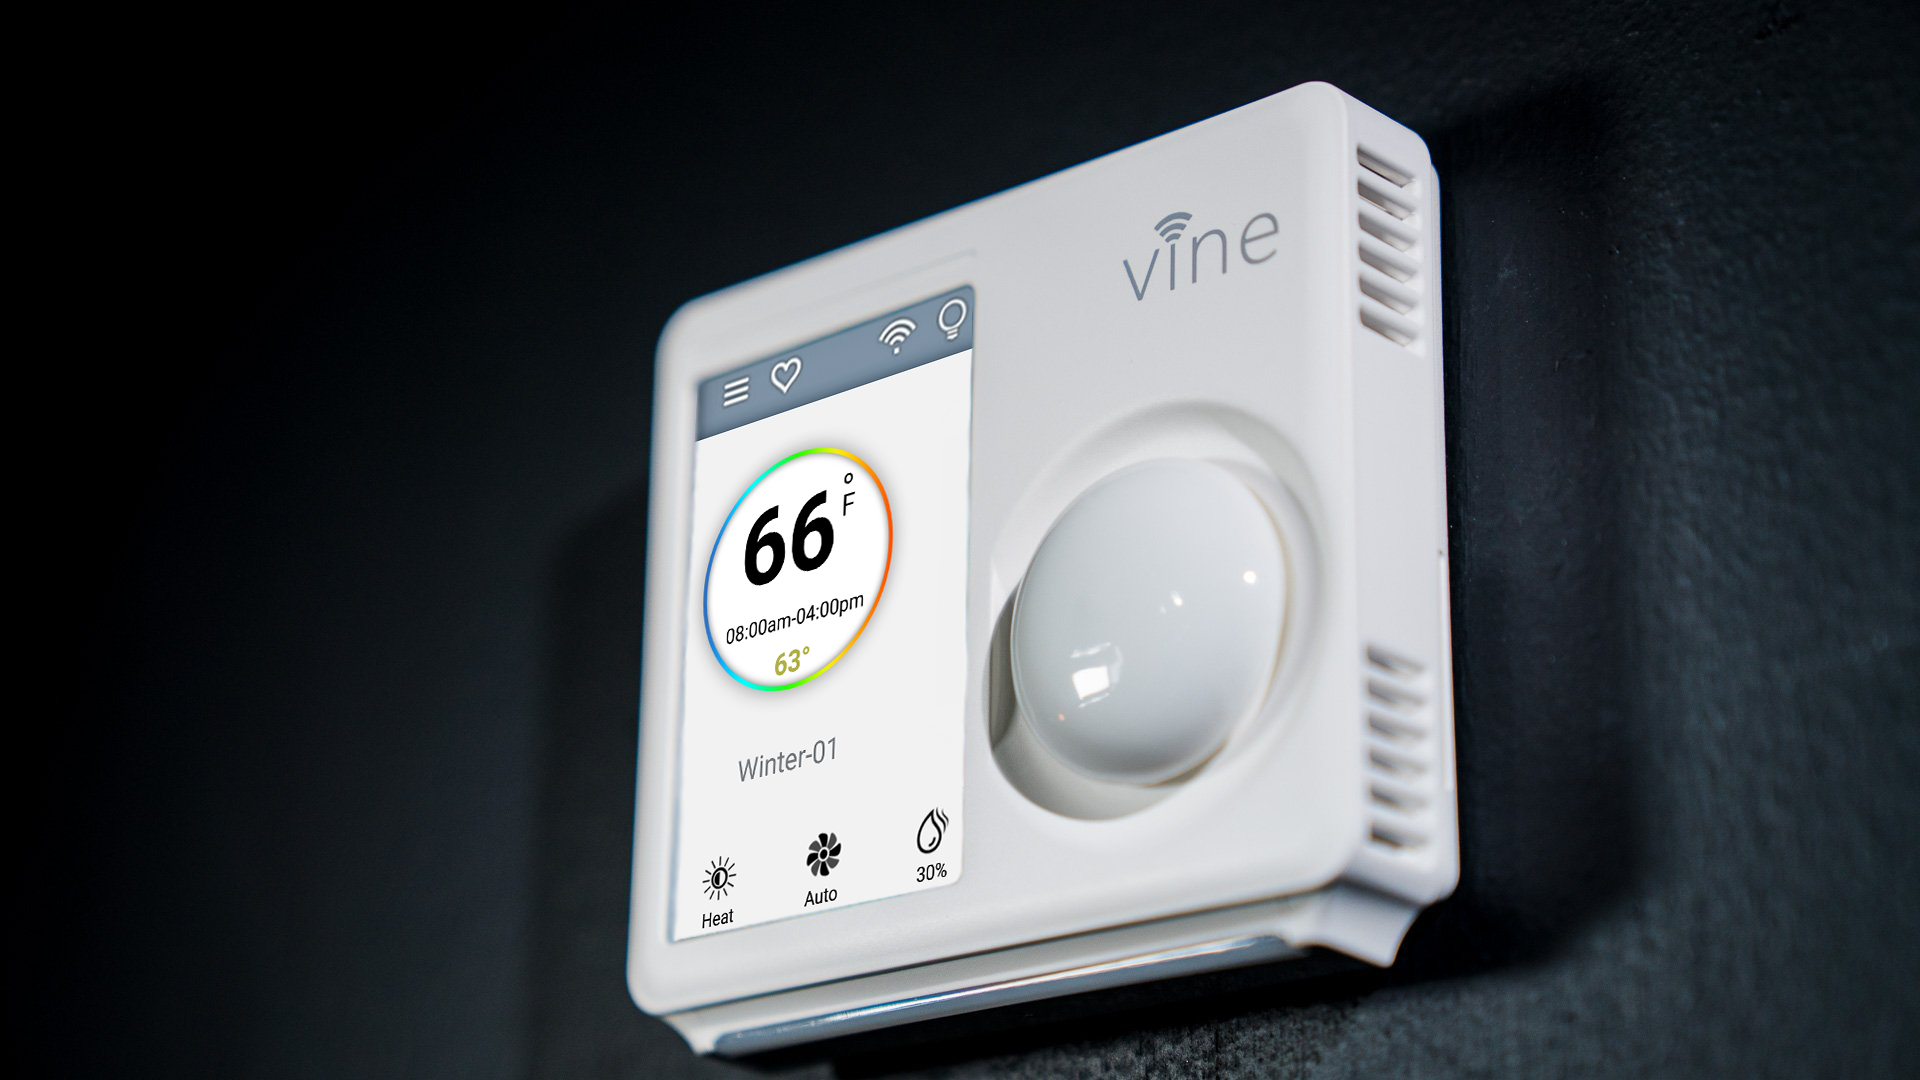 Vine Wi-Fi Thermostat: A Smart Device Without the Fluff